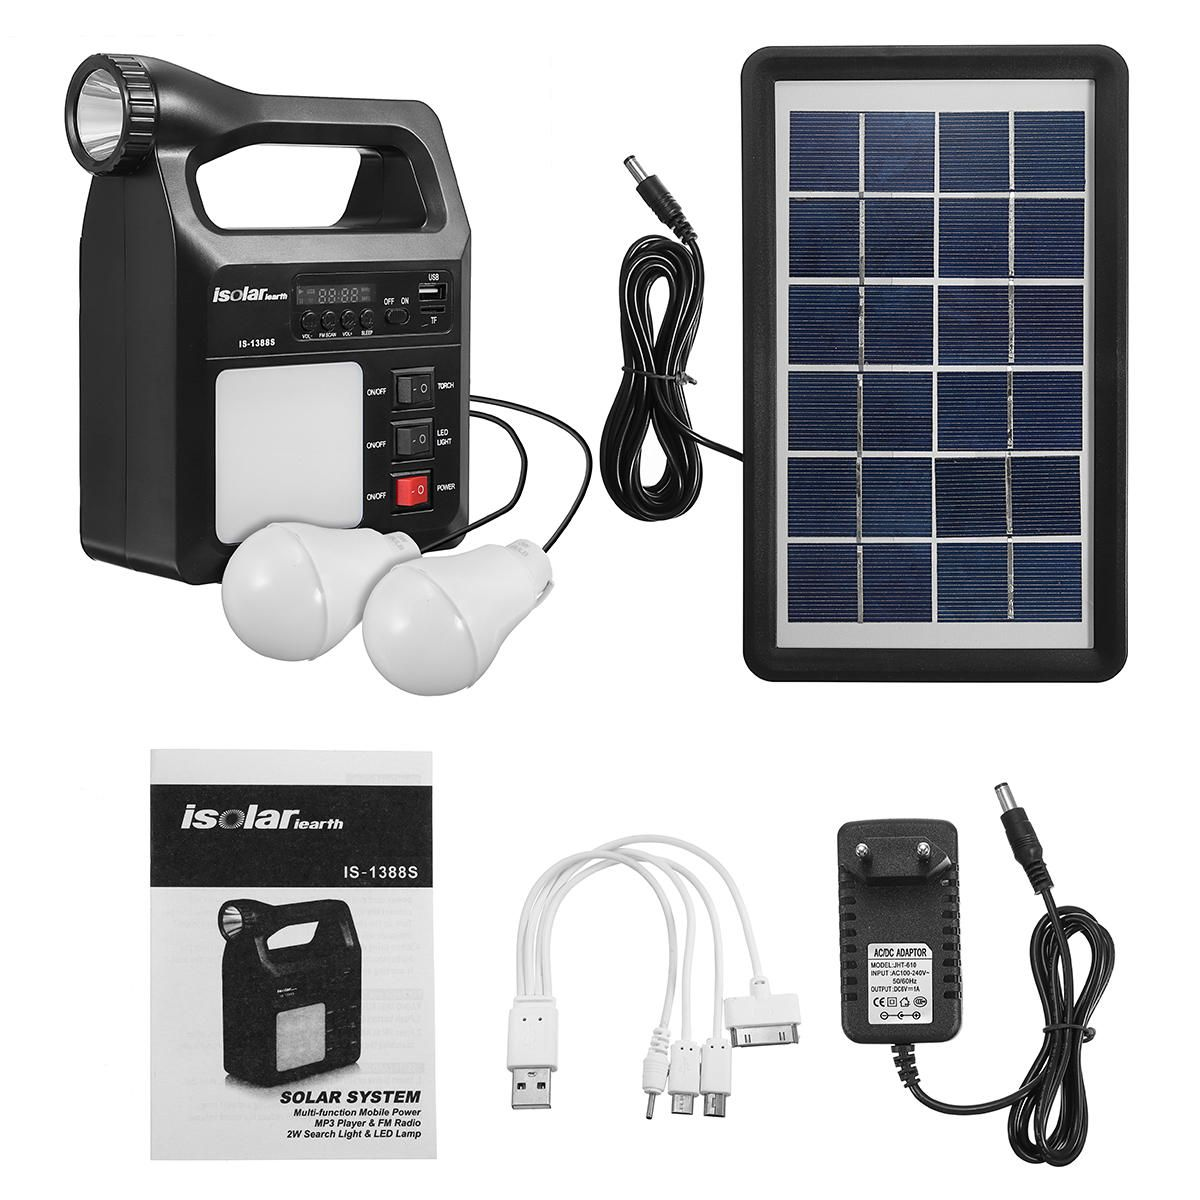 Us 64 42 Solar Powered System Protable Dc System Light Kit Multifuncation Solar Generator With Solar Panel Electrical Equipment Supplies From Tools Indust